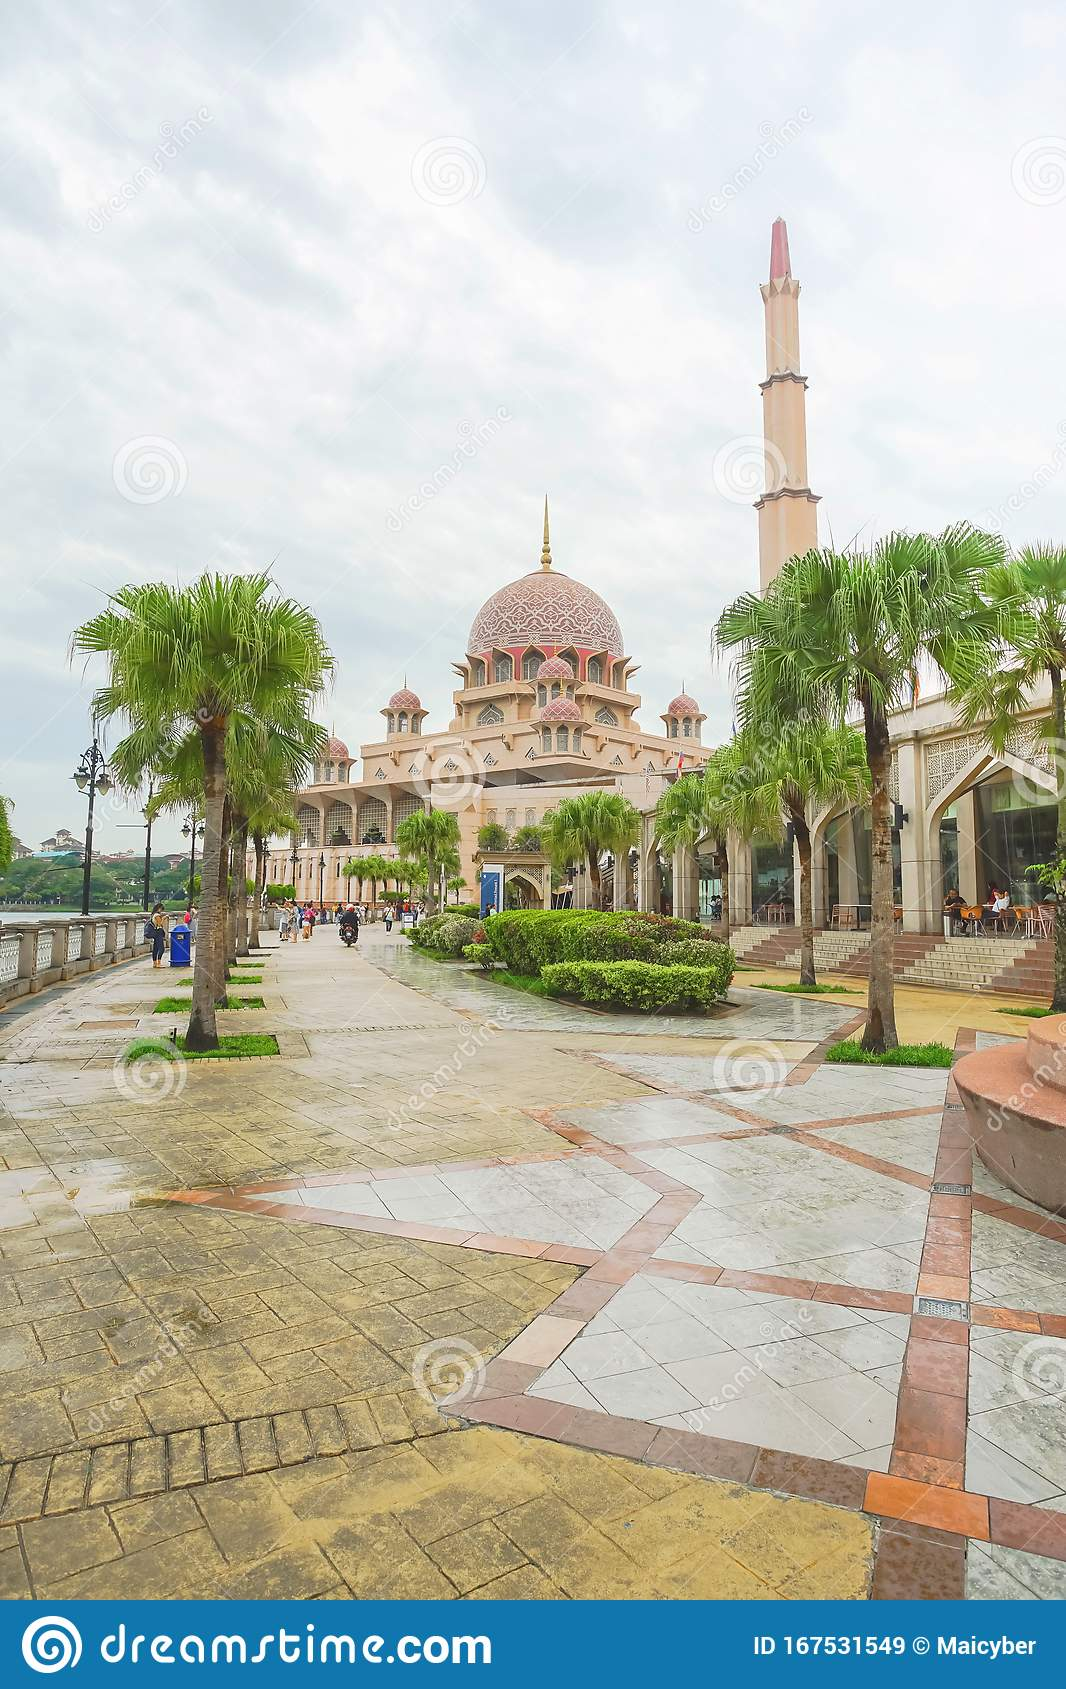 Putra Mosque The Famous Pink Mosque In Kuala Lumpur Editorial Stock Image -  Image of design, asia: 167531549